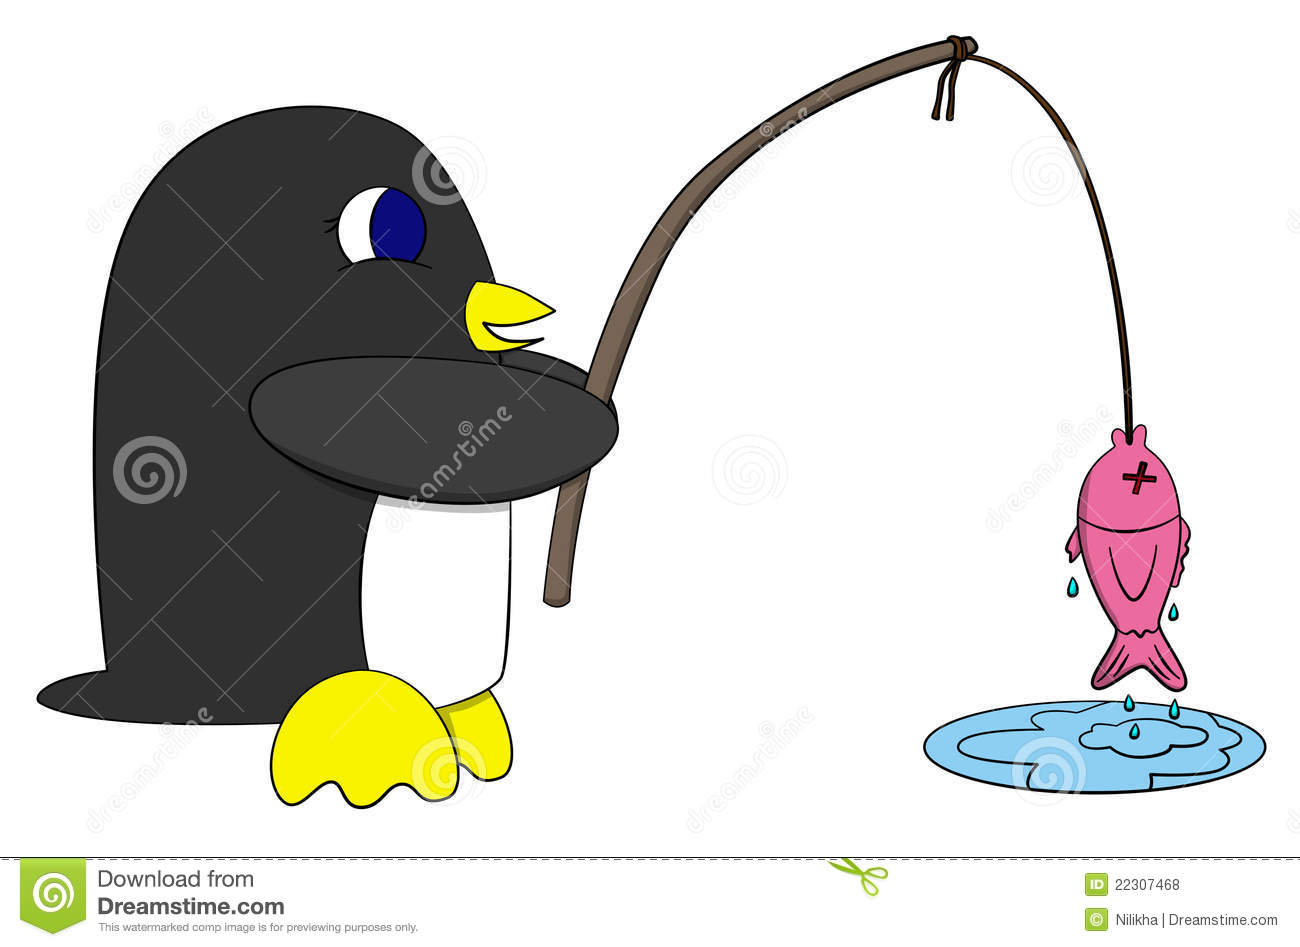 Penguin and fish royalty free stock photos image 22307468 for Penguin and fish